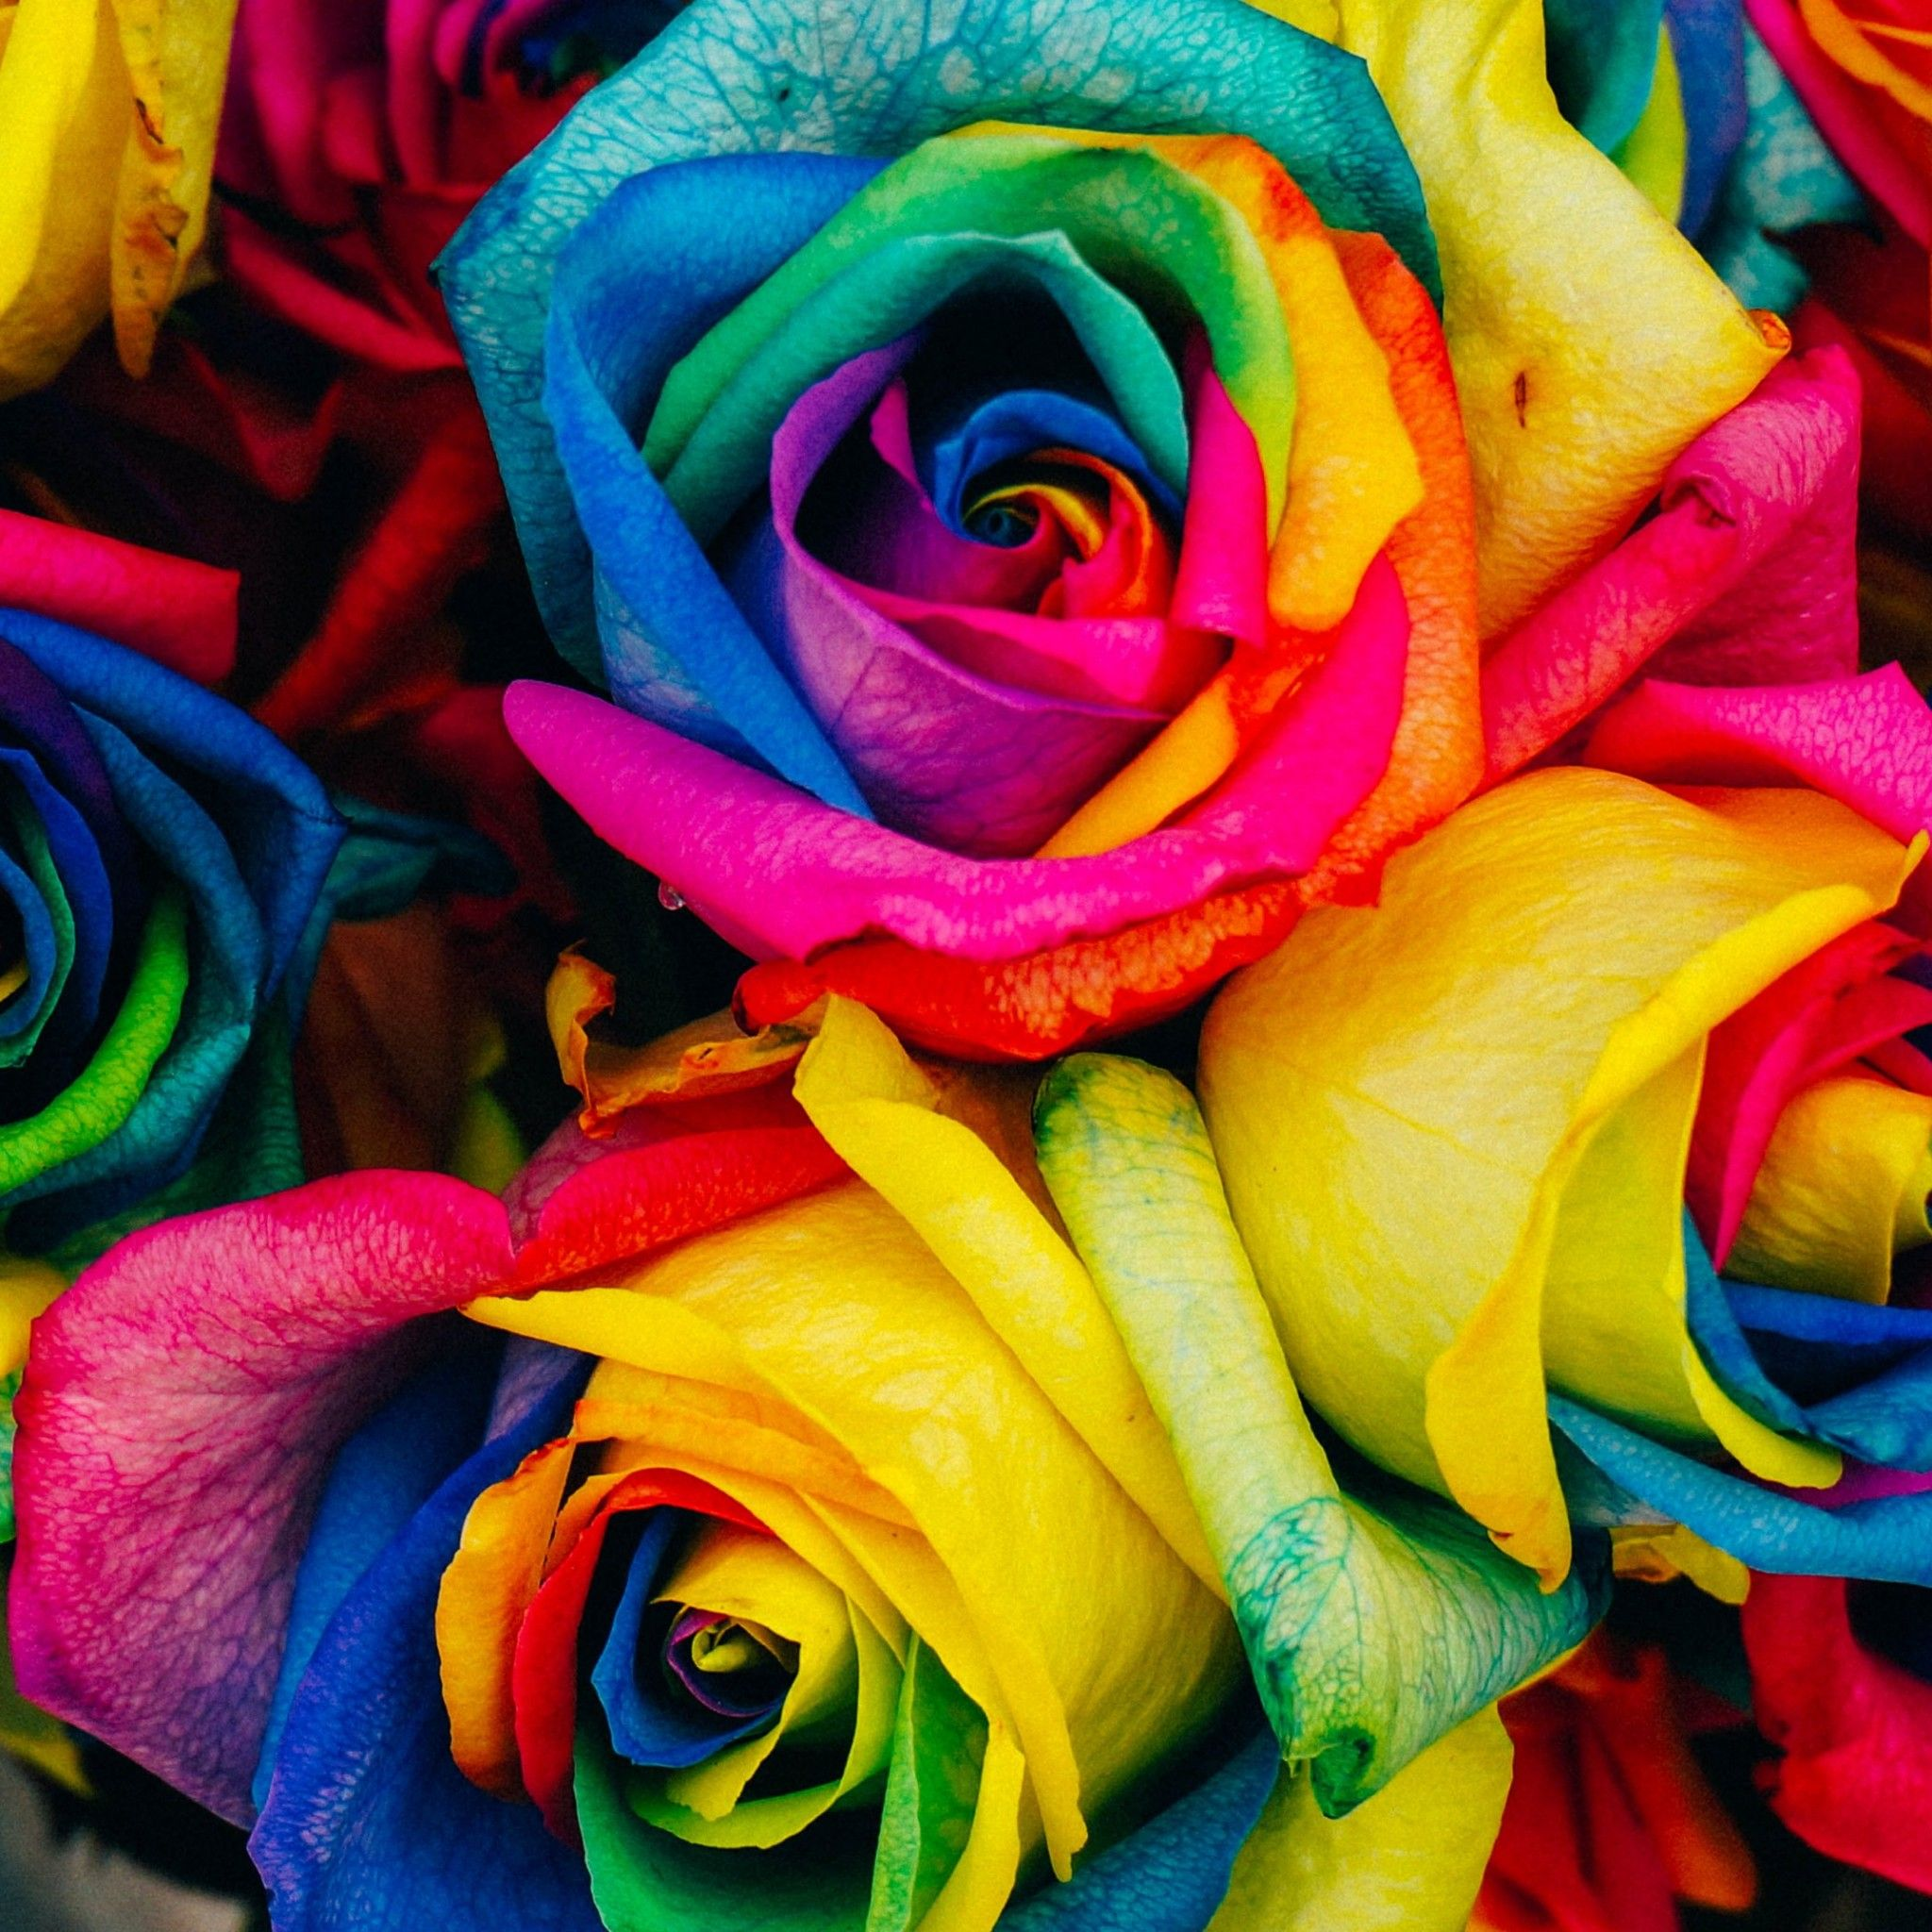 3d Wallpaper Printing Machine Suppliers Rainbow Roses Tap To See More Color Full Wallpapers